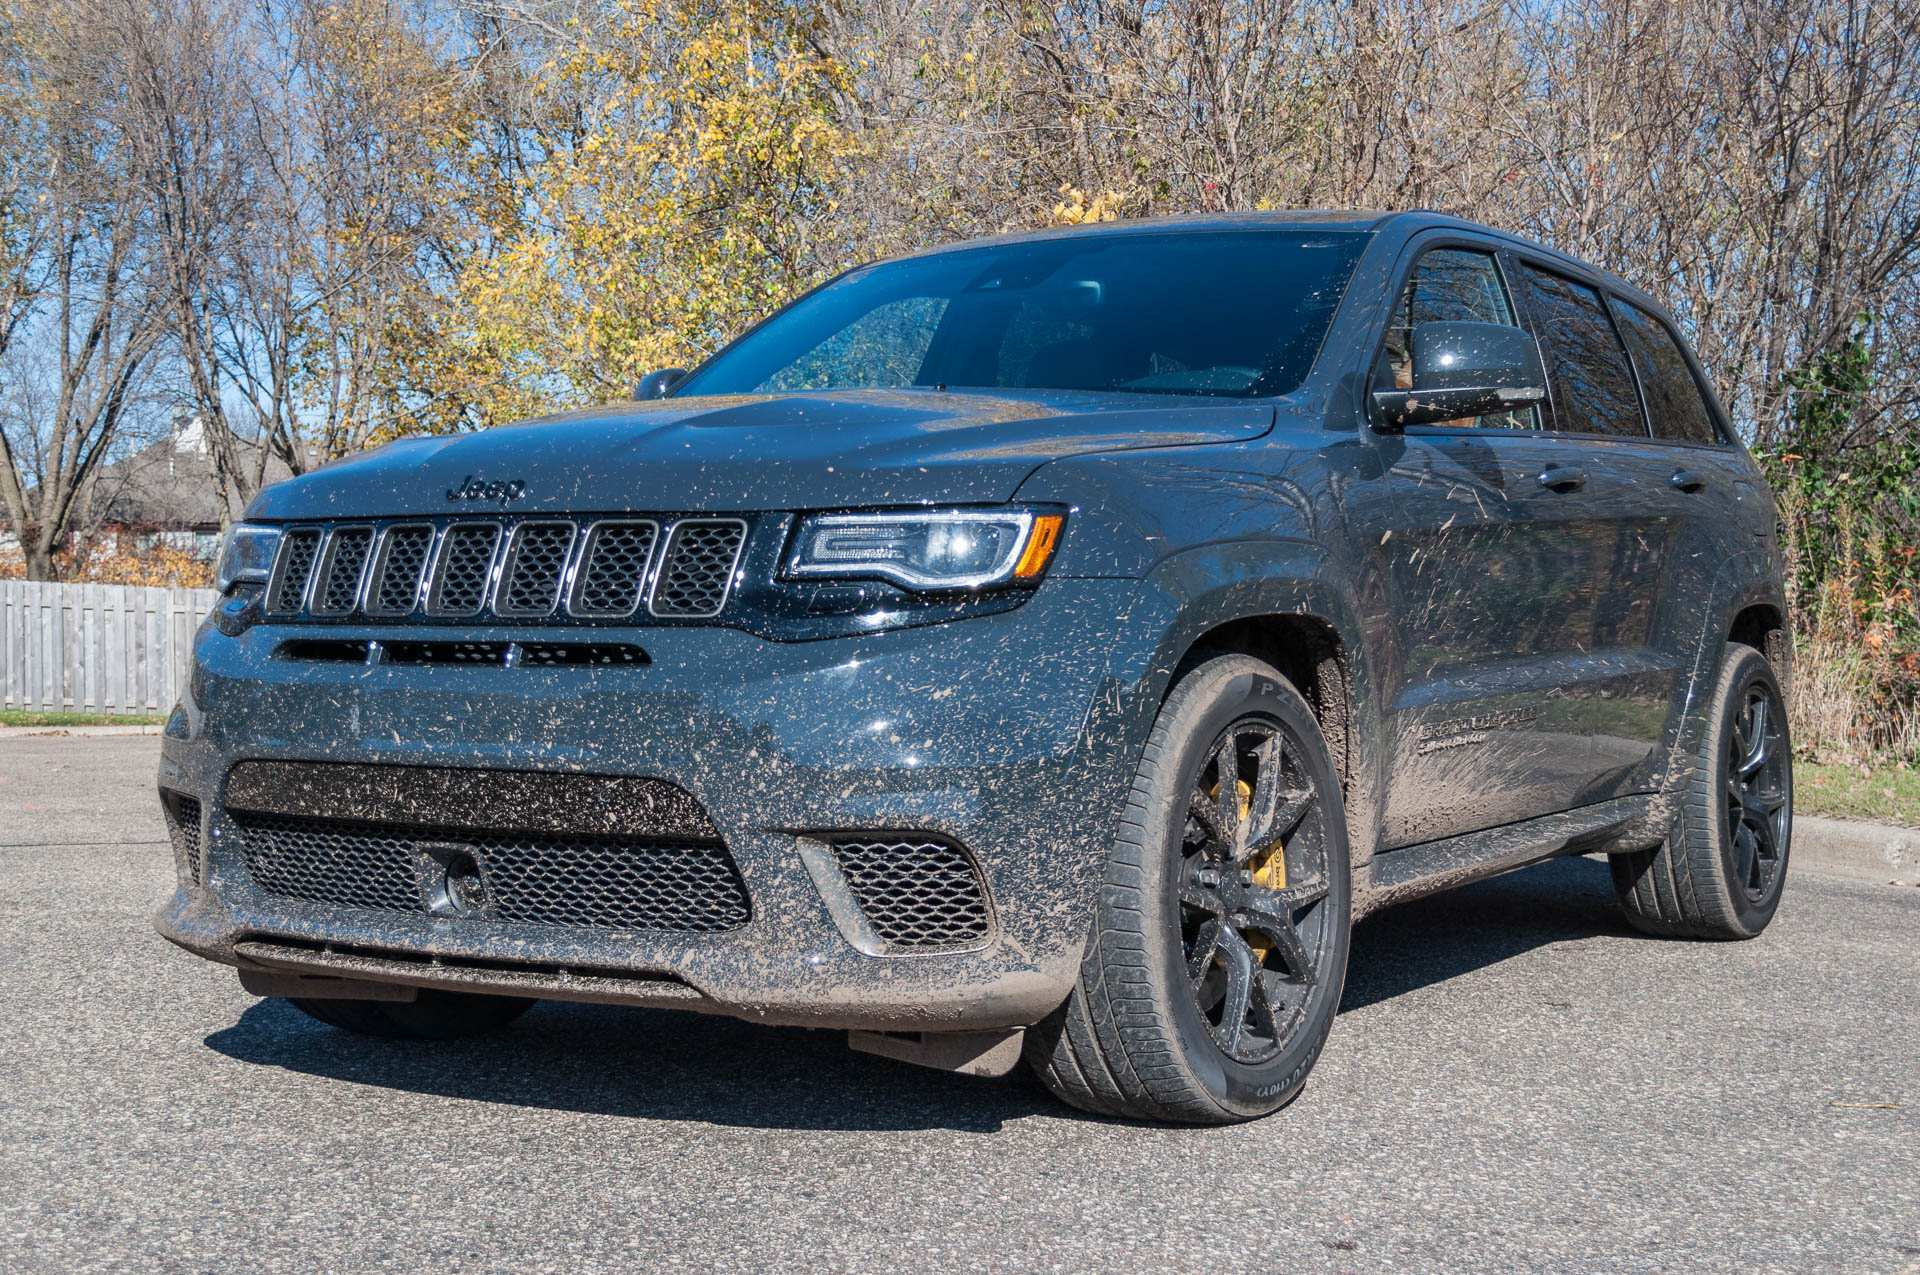 53 A 2020 Grand Cherokee Srt Hellcat Redesign And Review